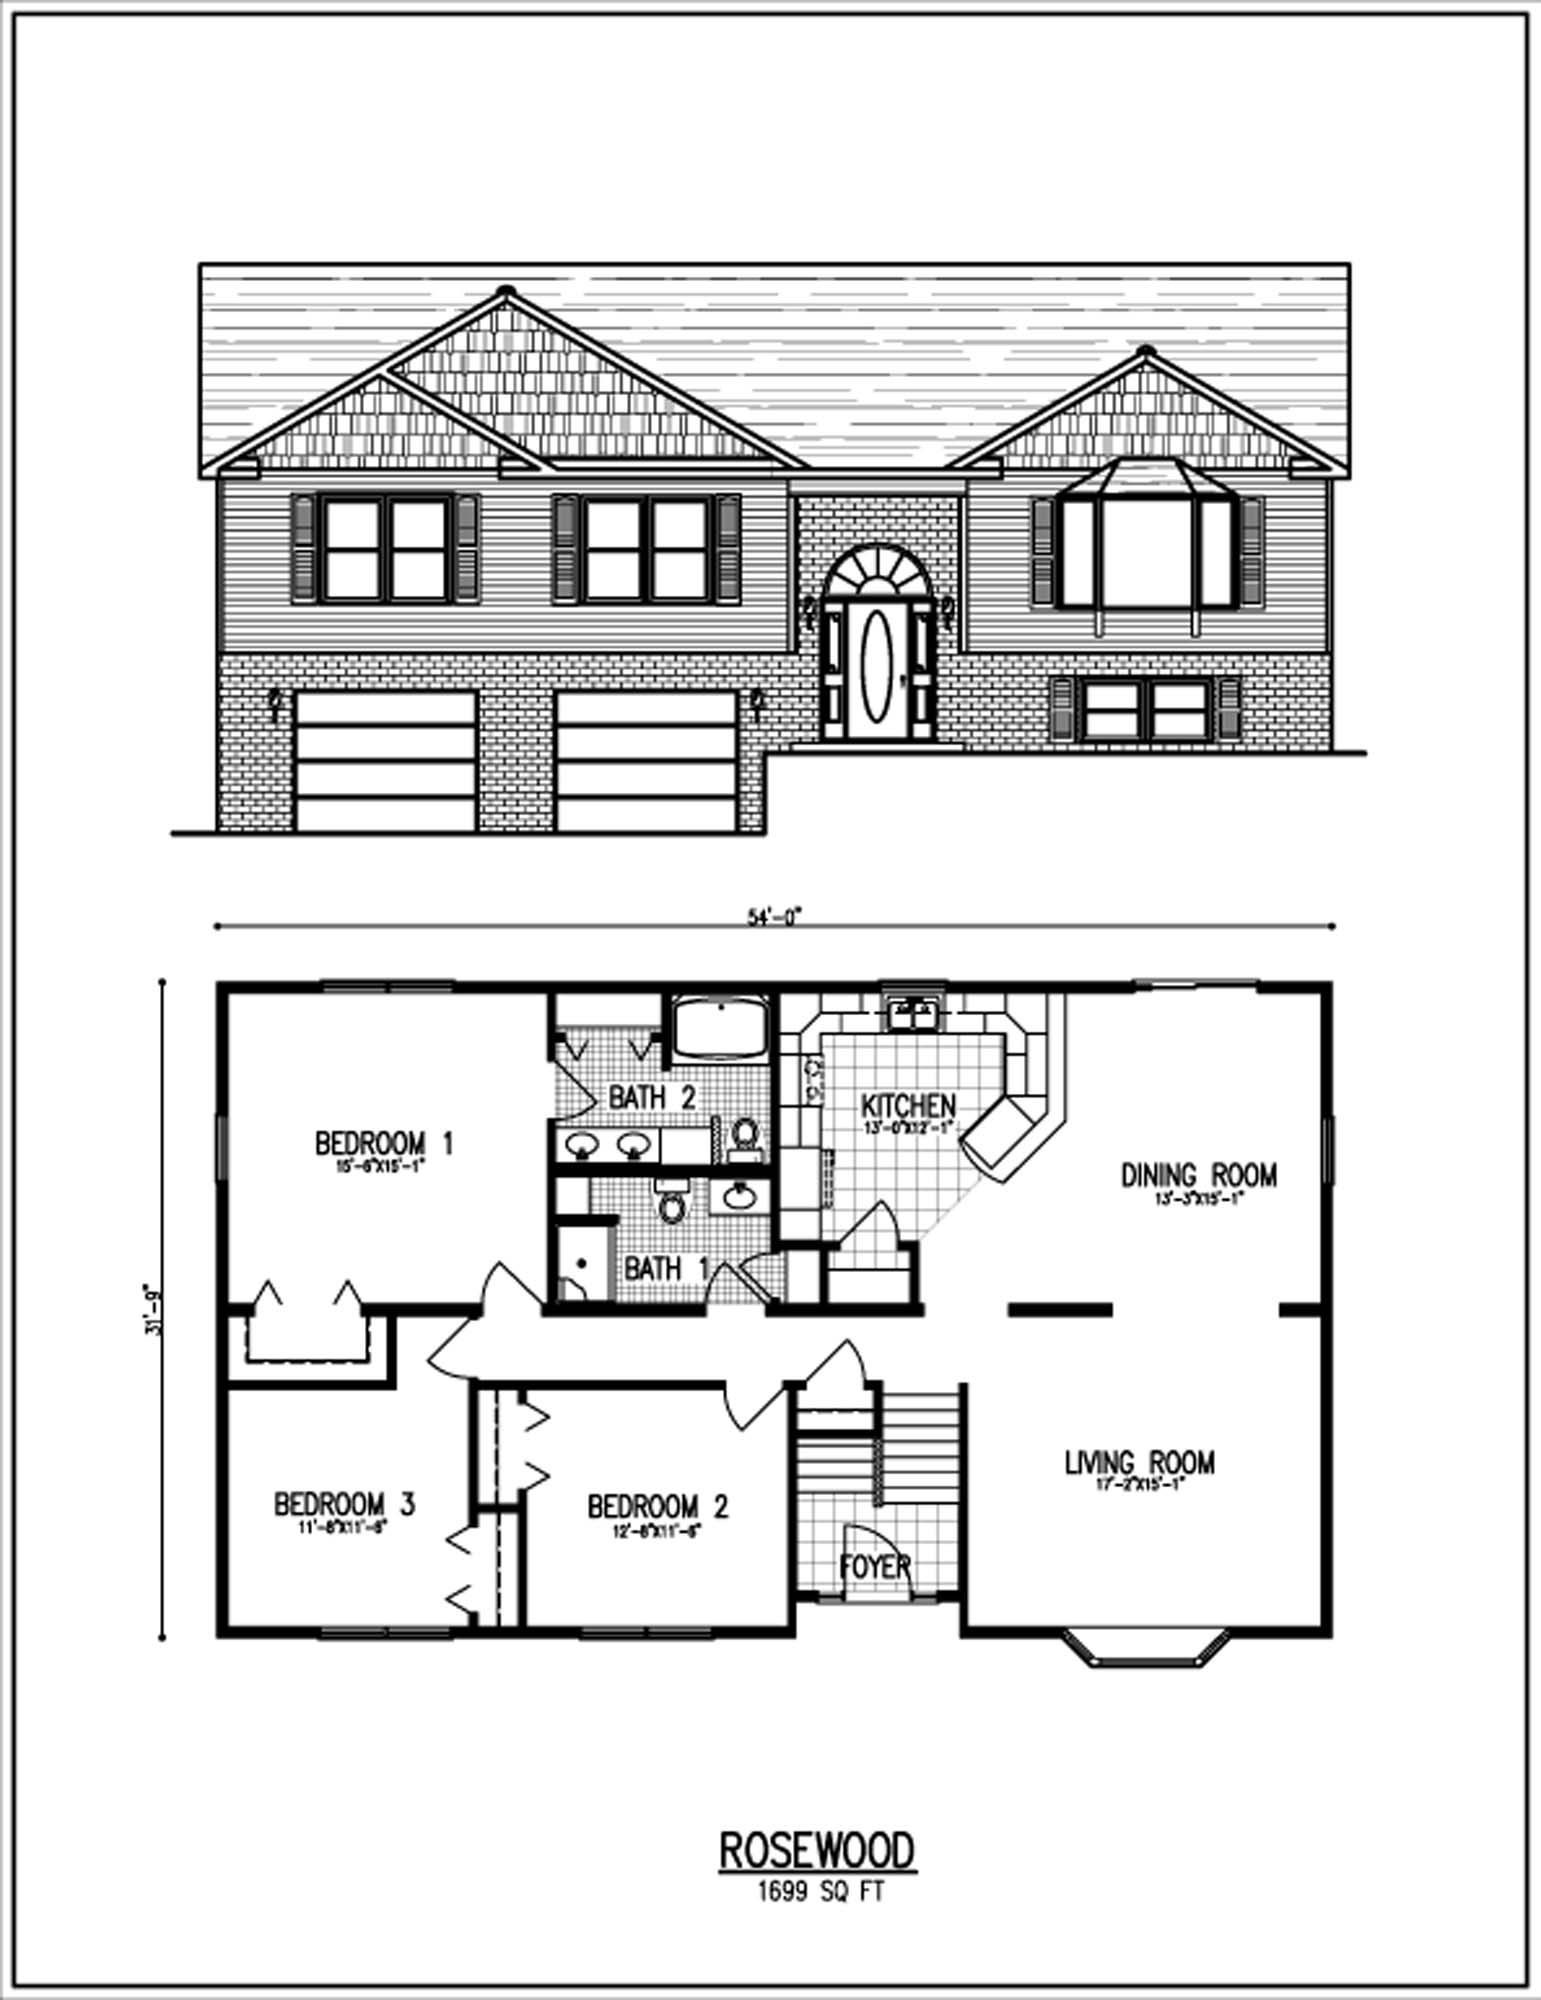 Raised ranch house plans house design plans for Raised home designs